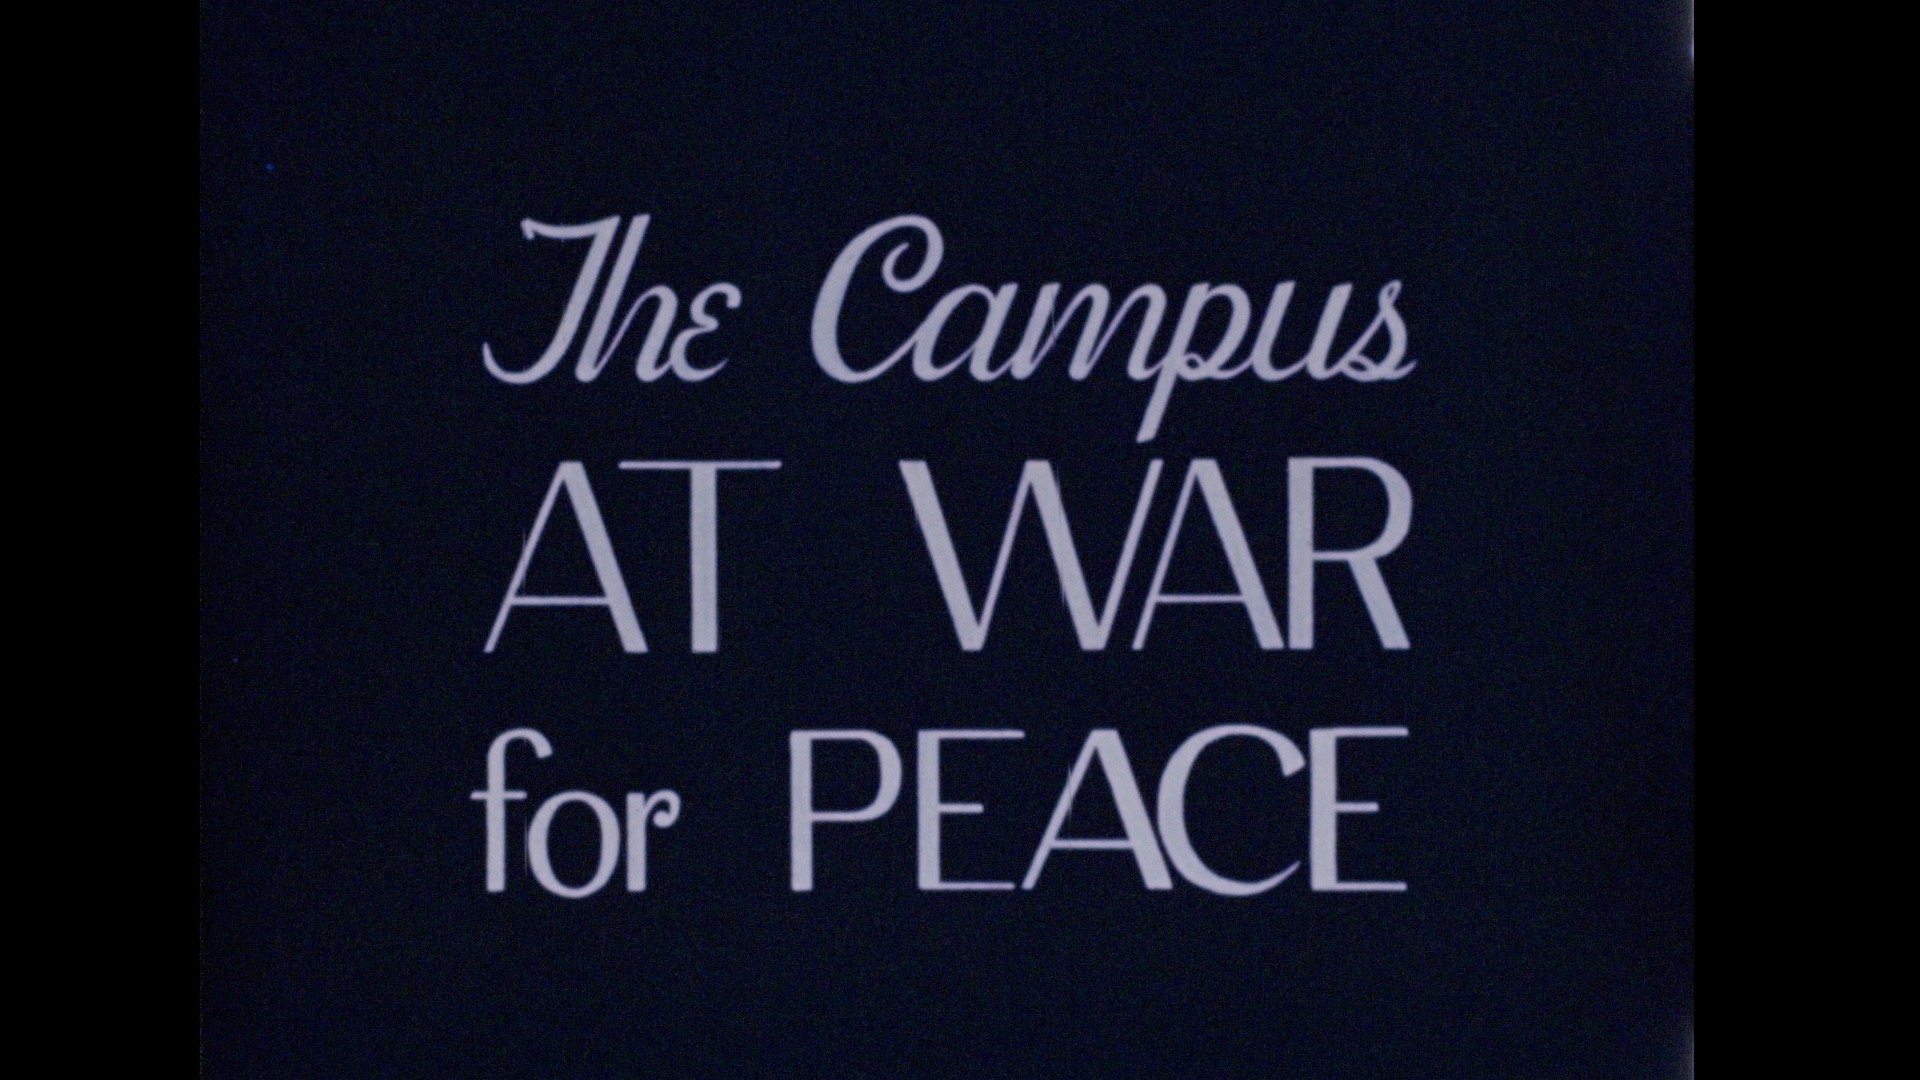 The Campus at War for Peace